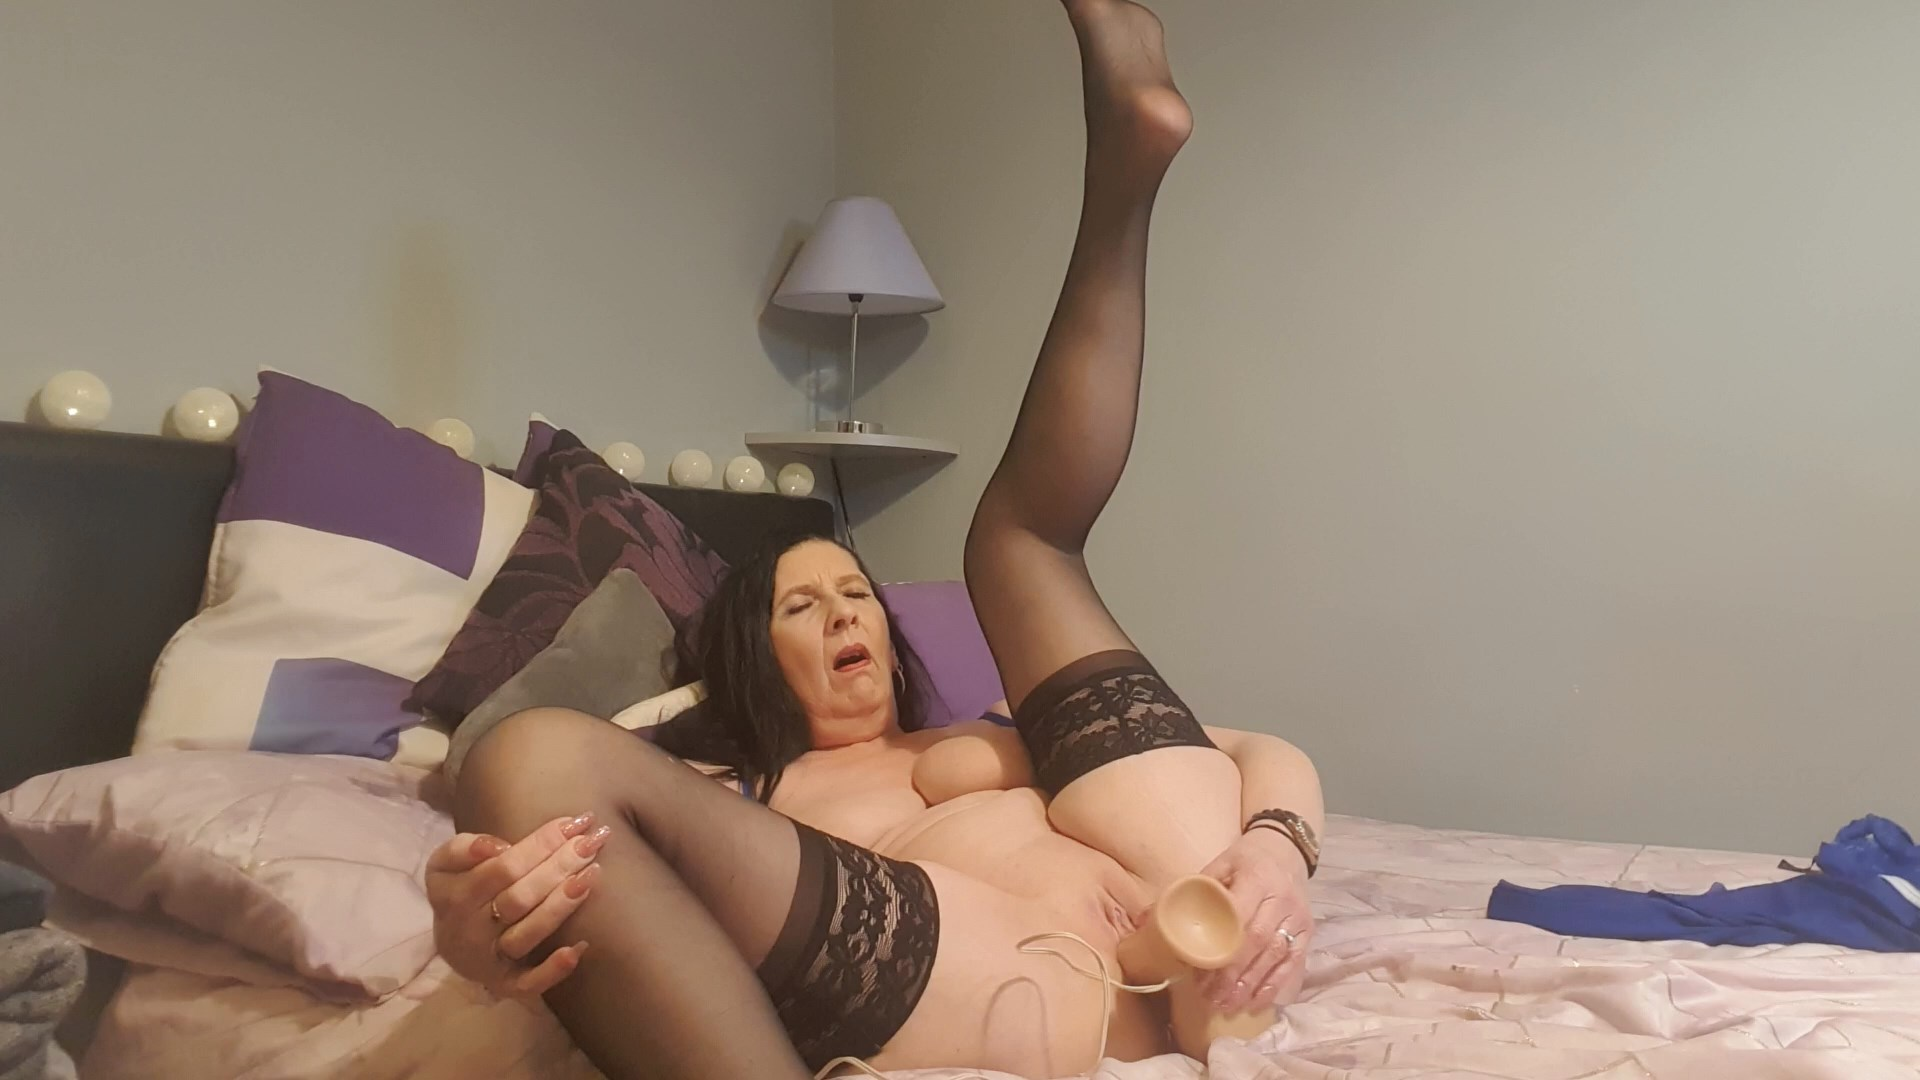 Katieleigh - Mommy Catches You Watching